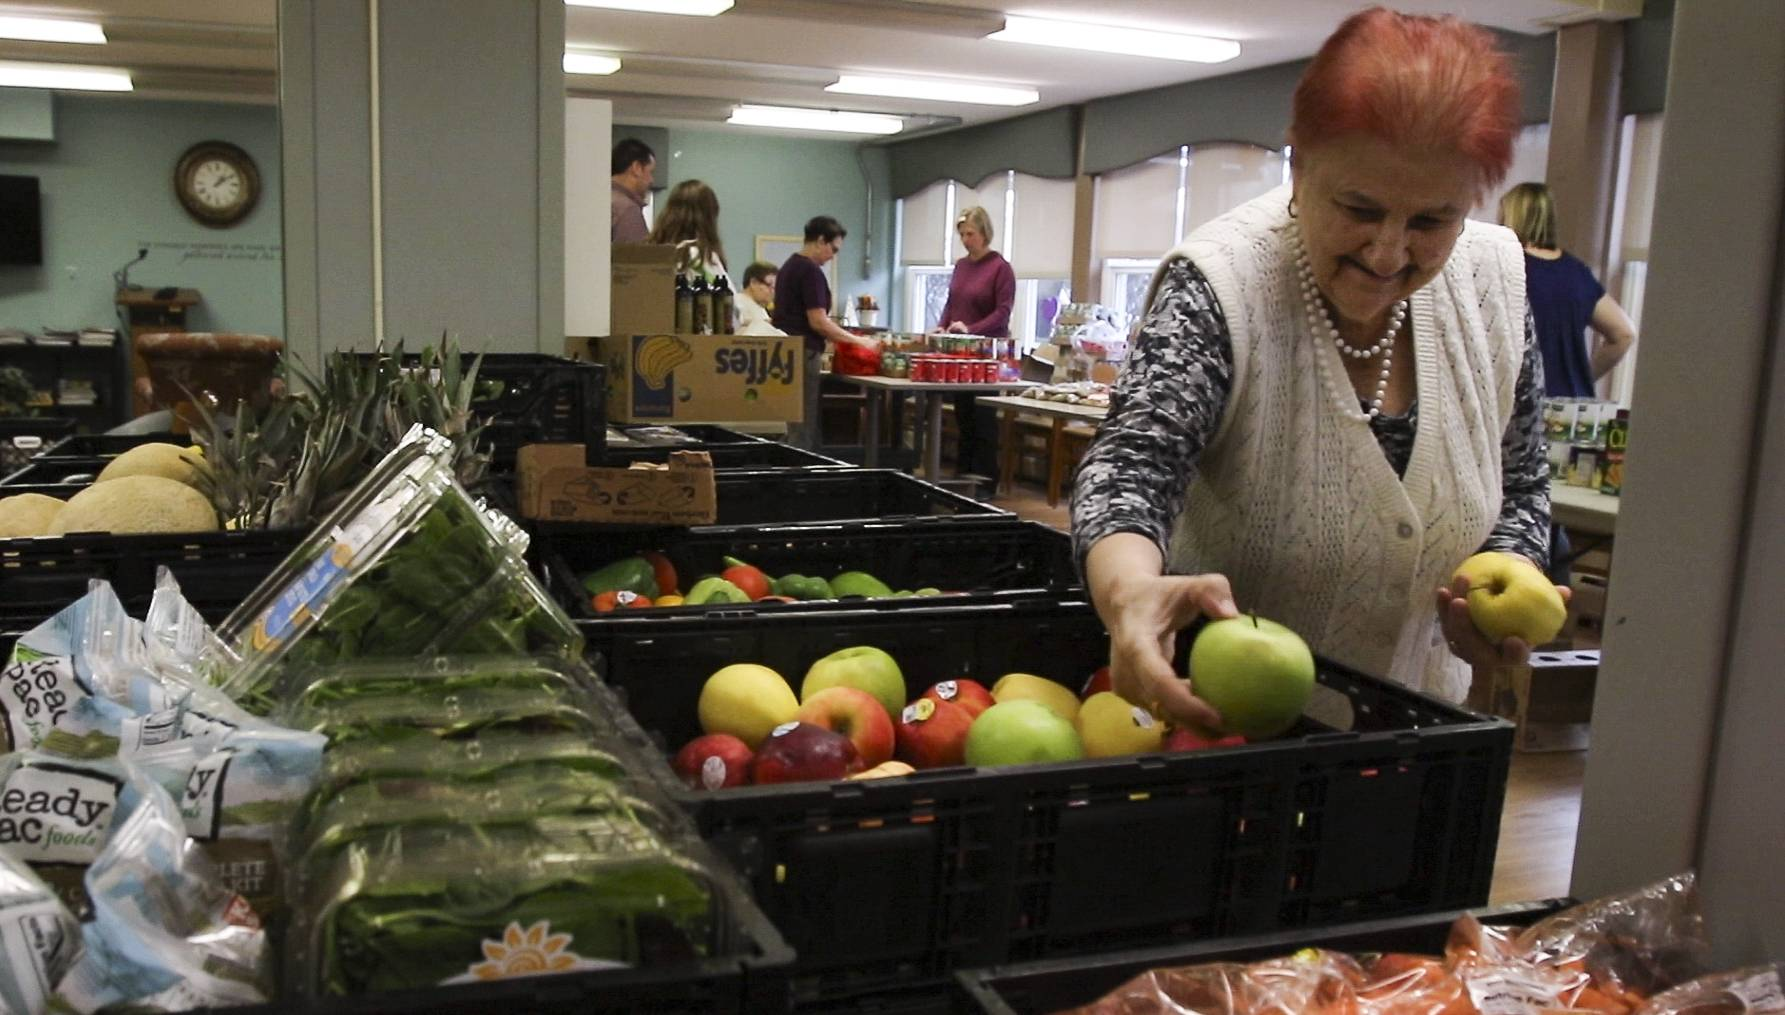 Pantry's mini market brings grocery convenience to Wheaton seniors